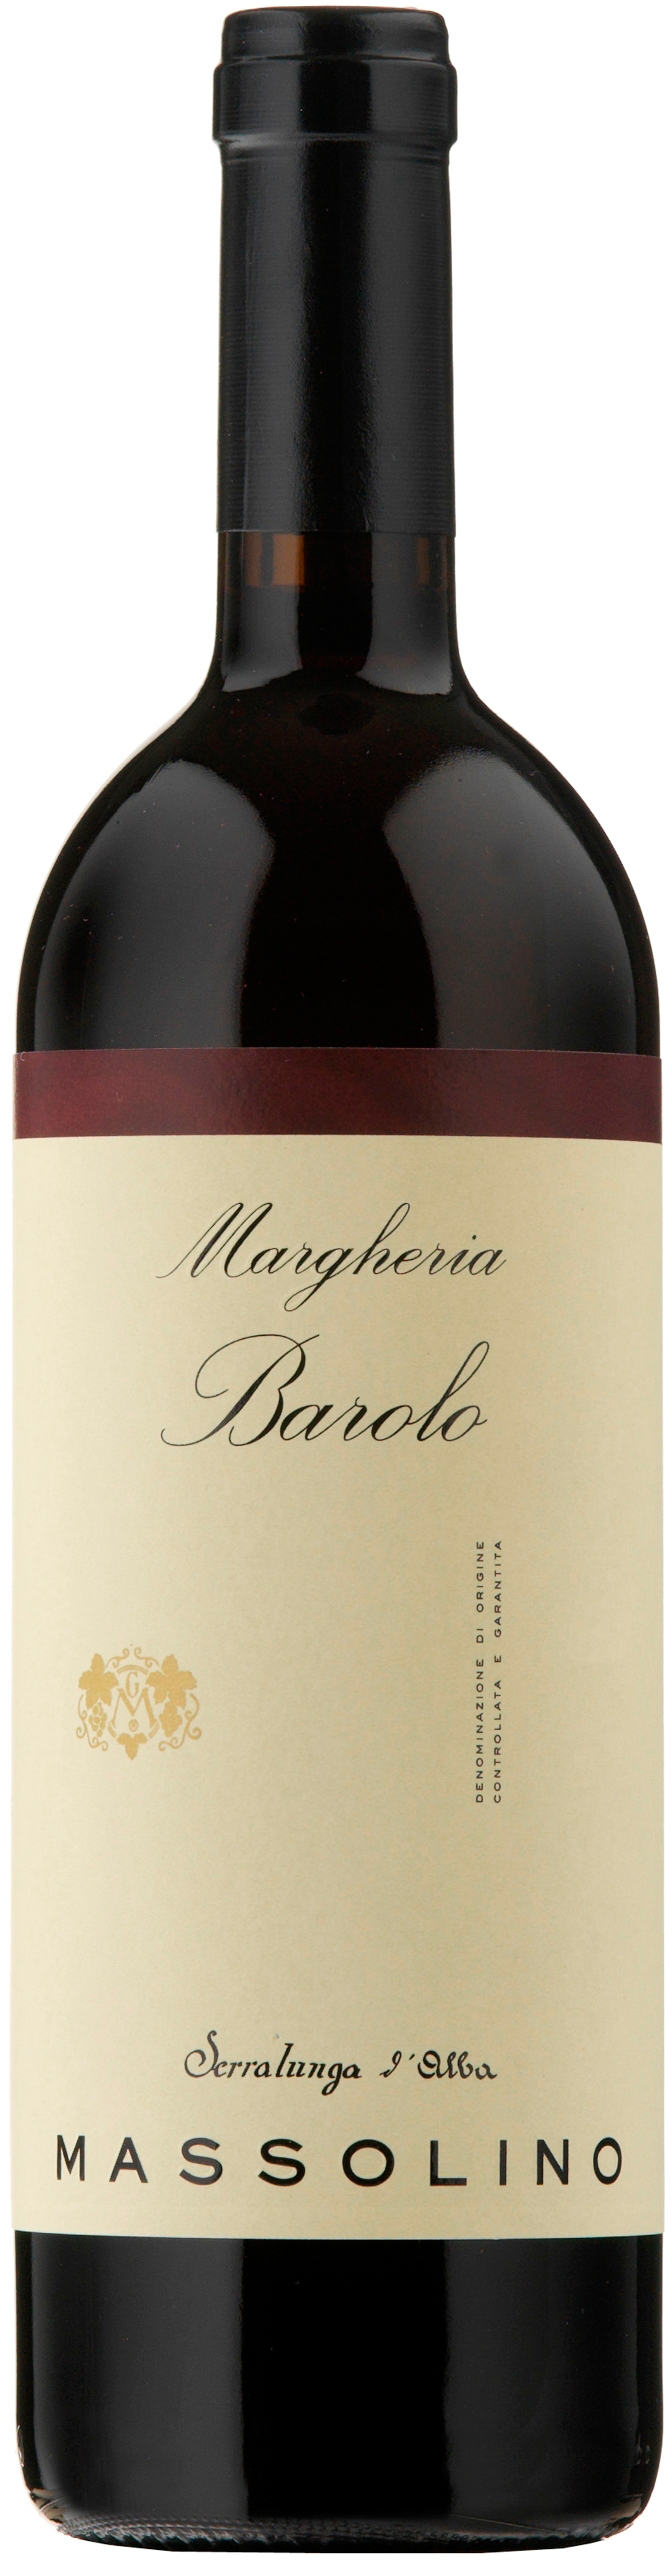 Massolino, Barolo `Margheria` 2012